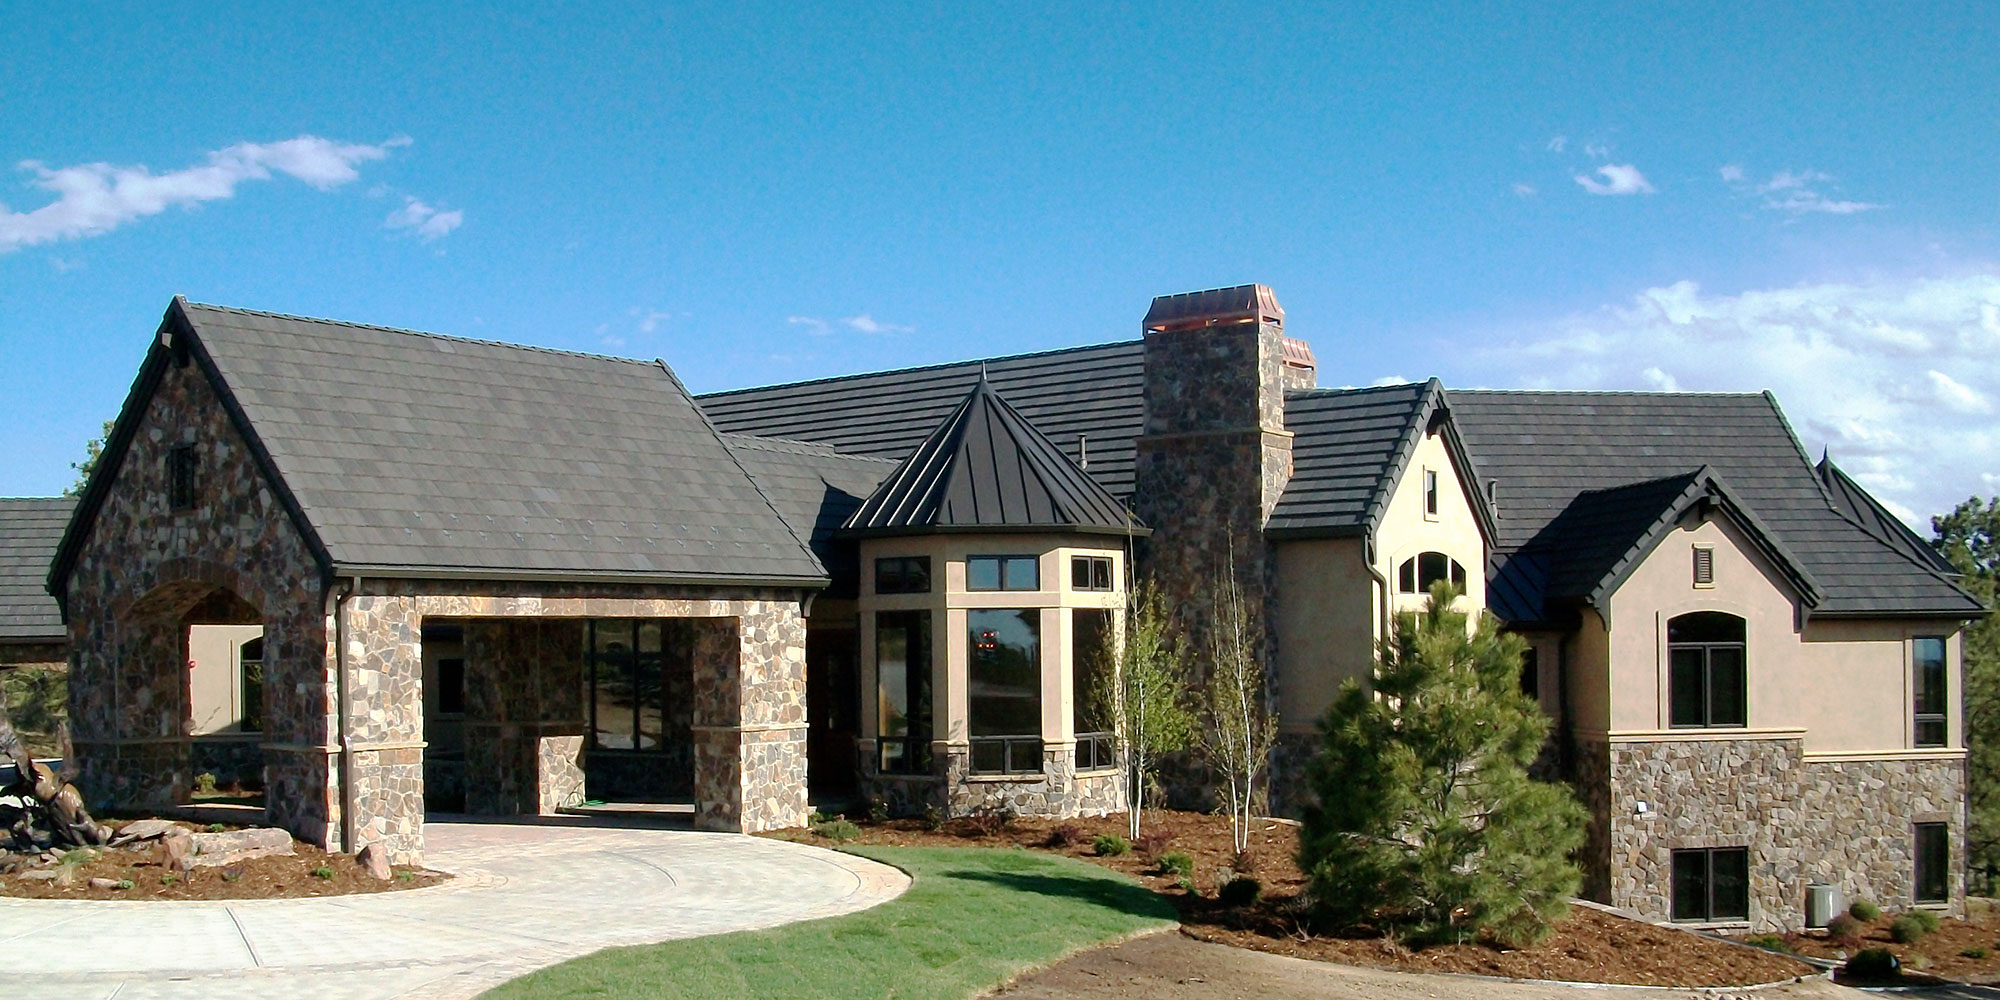 About Distinctive Custom Roofing